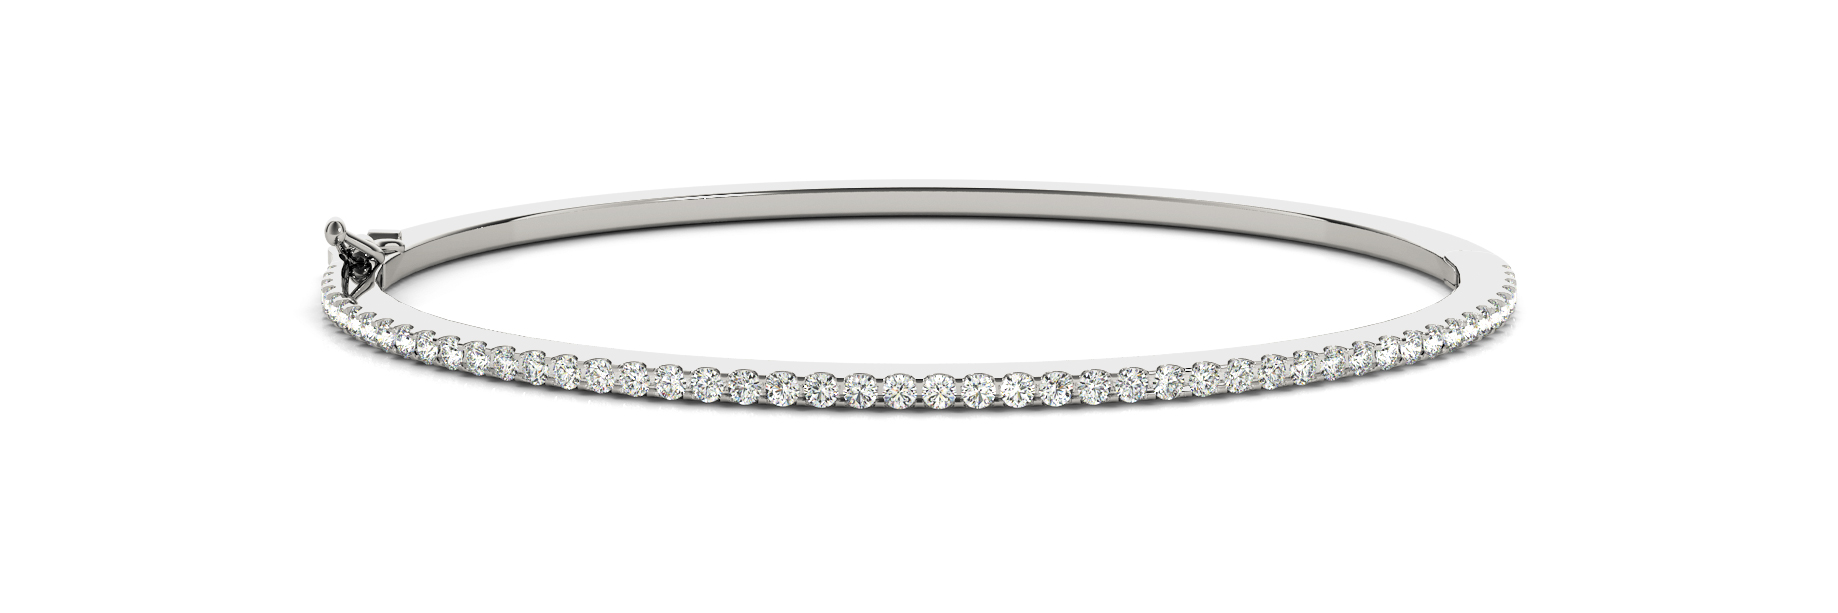 0.43 Carat Round Diamond Bangle in White Gold